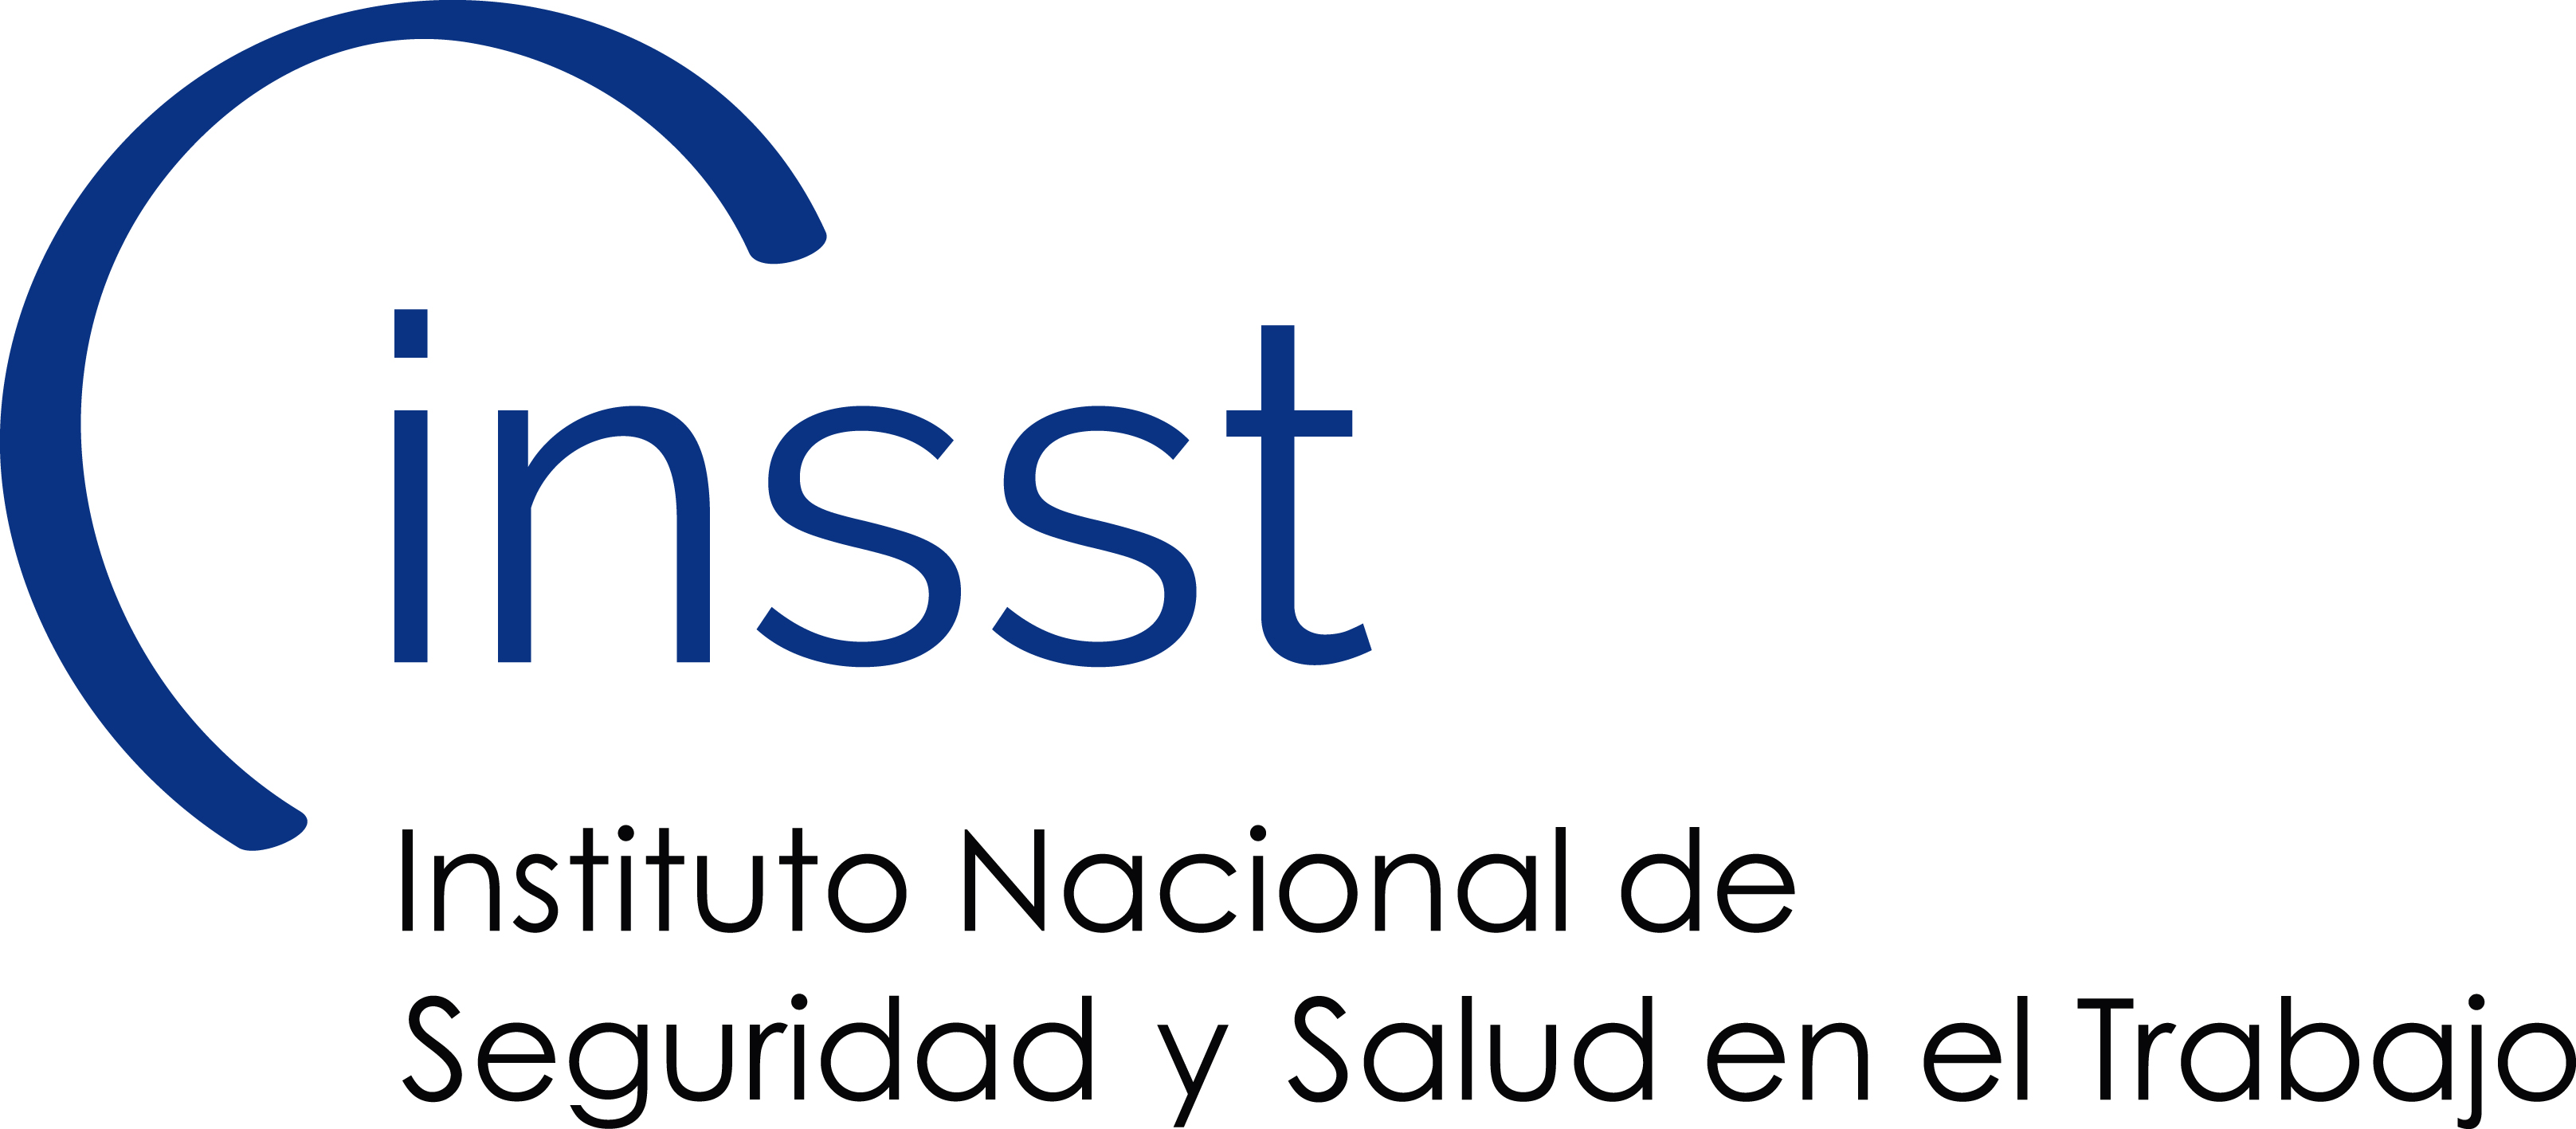 National Institute for Safety and Health at Work (INSST)